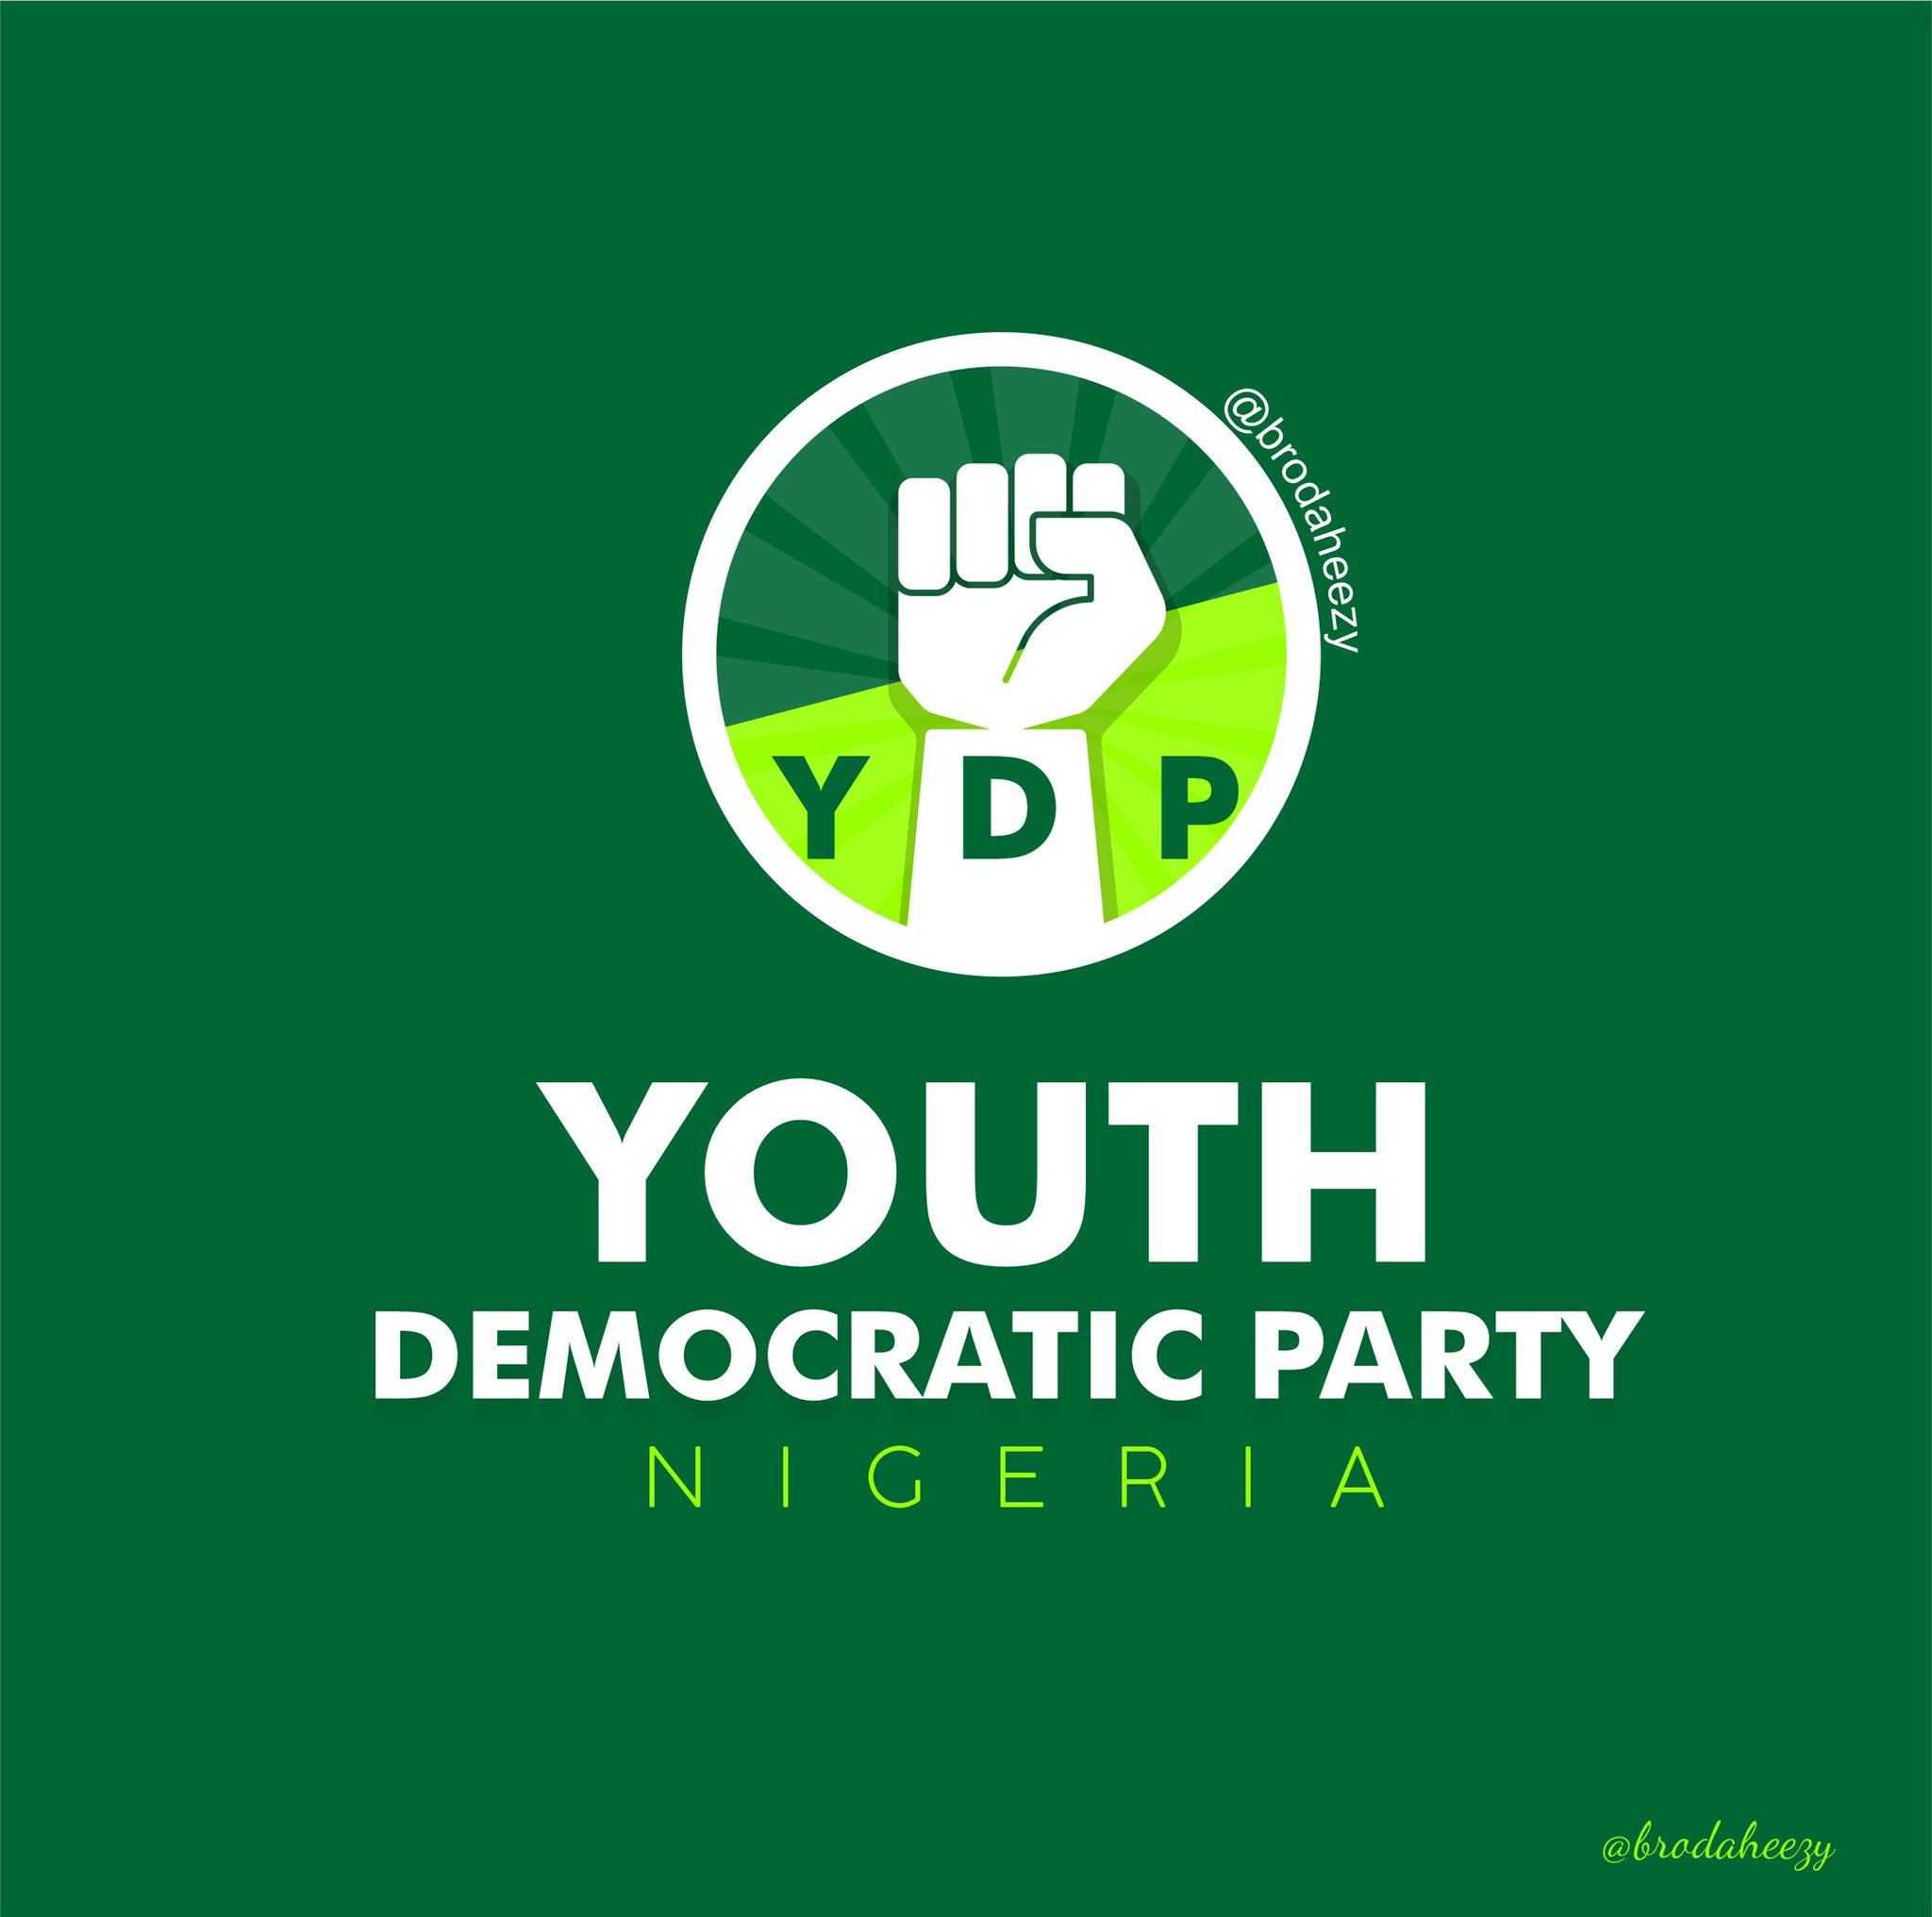 #YouthDemocraticParty, Young protesters create their own party